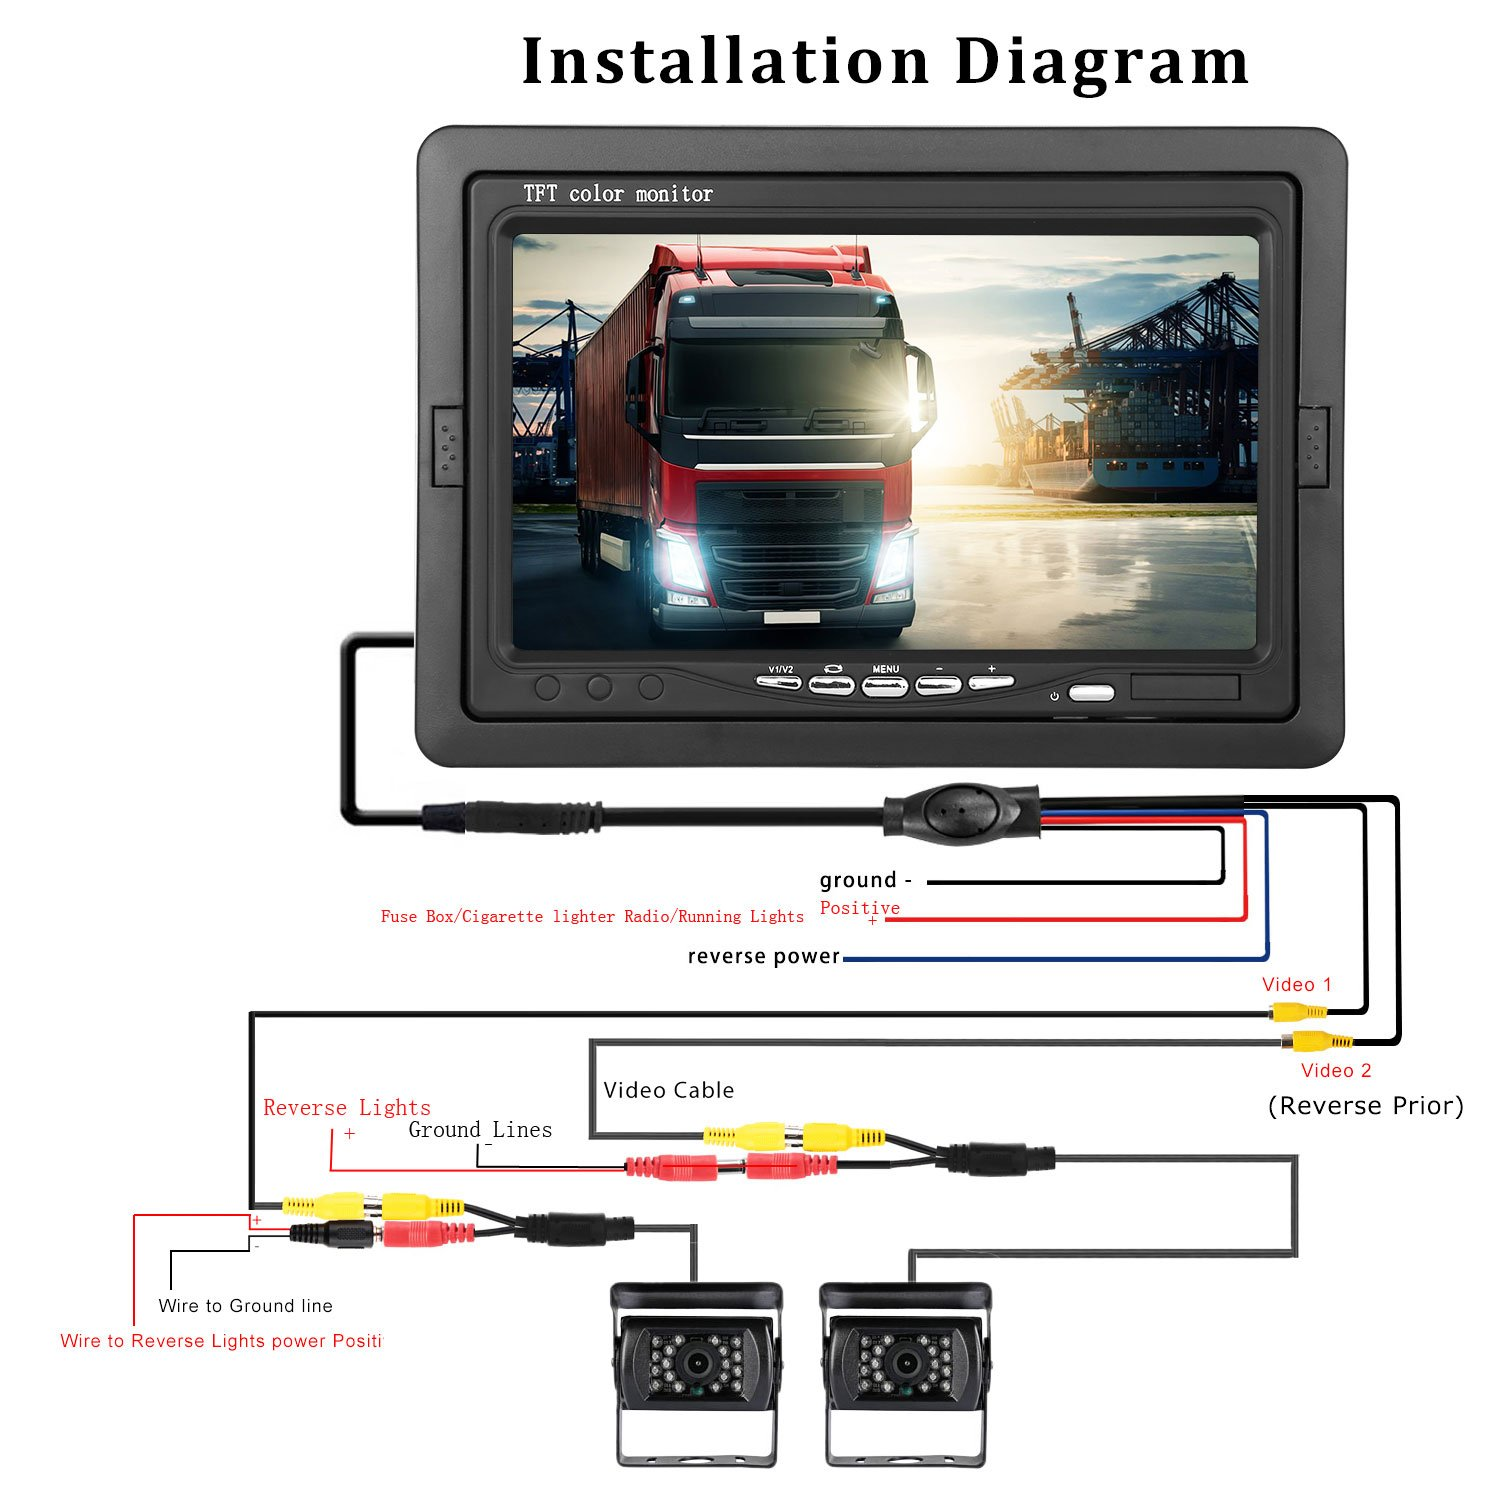 Amusing Night Vision Camera Wiring Diagram Power Pictures - Best ...